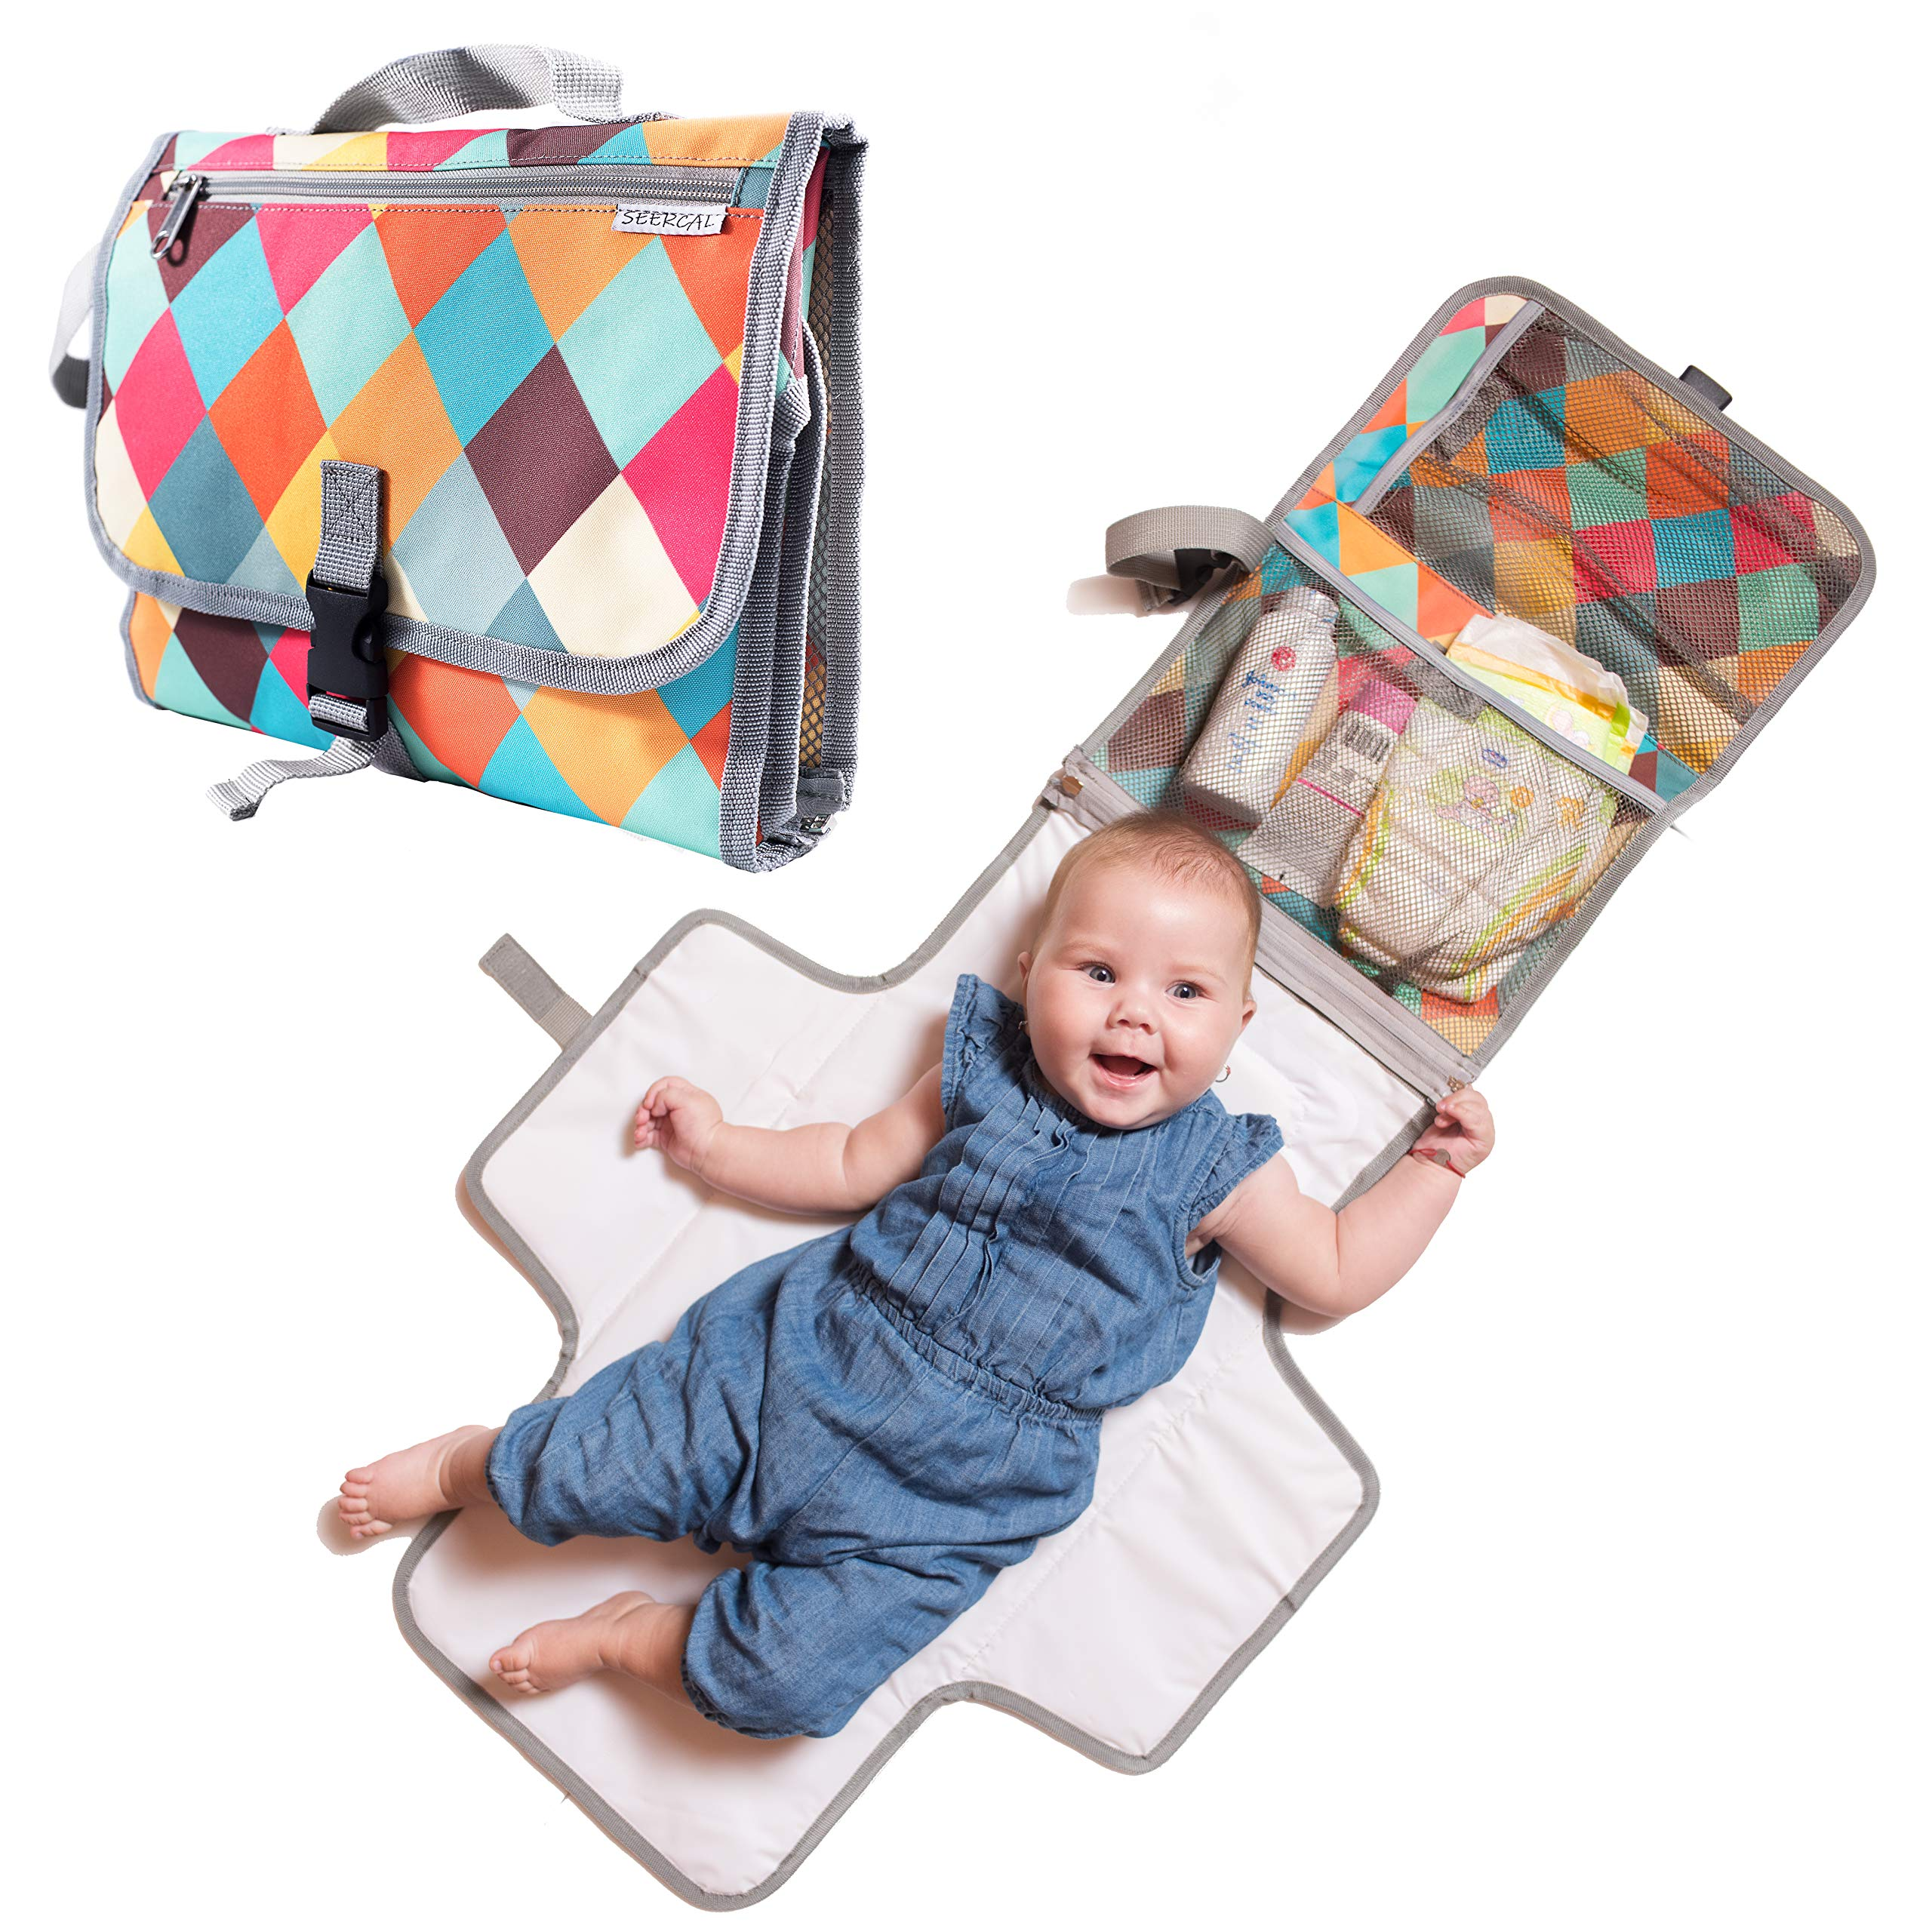 Baby Portable Diaper Changing Pad - Light Travel Clutch and Organizer with Mesh Pockets and Waterproof Mat - Change Station Kit with Head Cushion for Newborn and Infants - Colorful Baby Shower Gift by Seercal